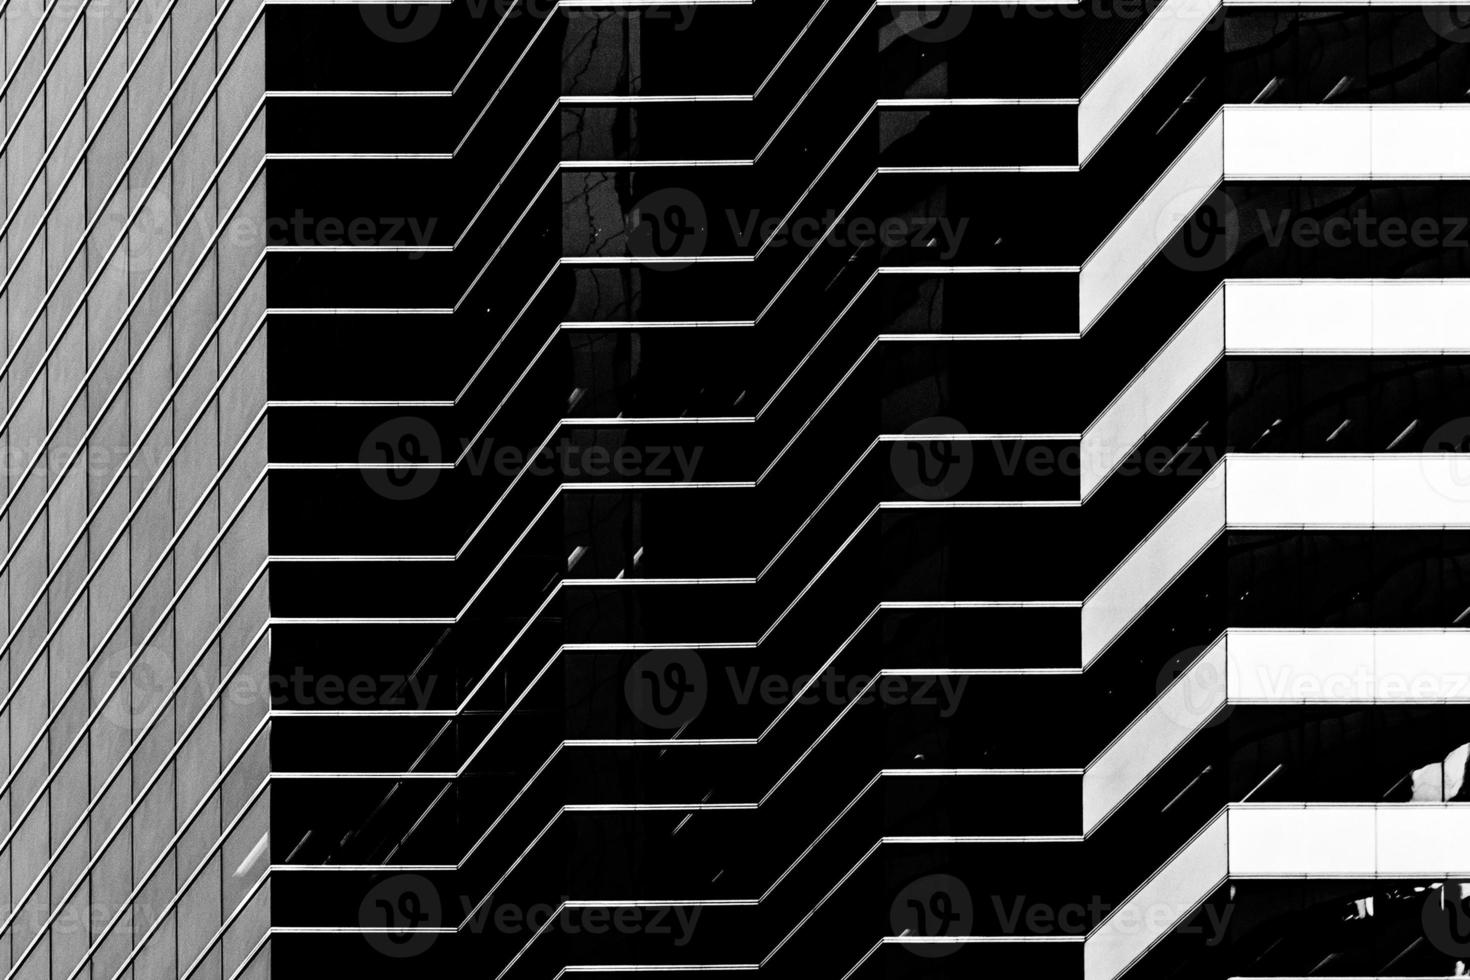 architectures commerciales modernes n & b photo